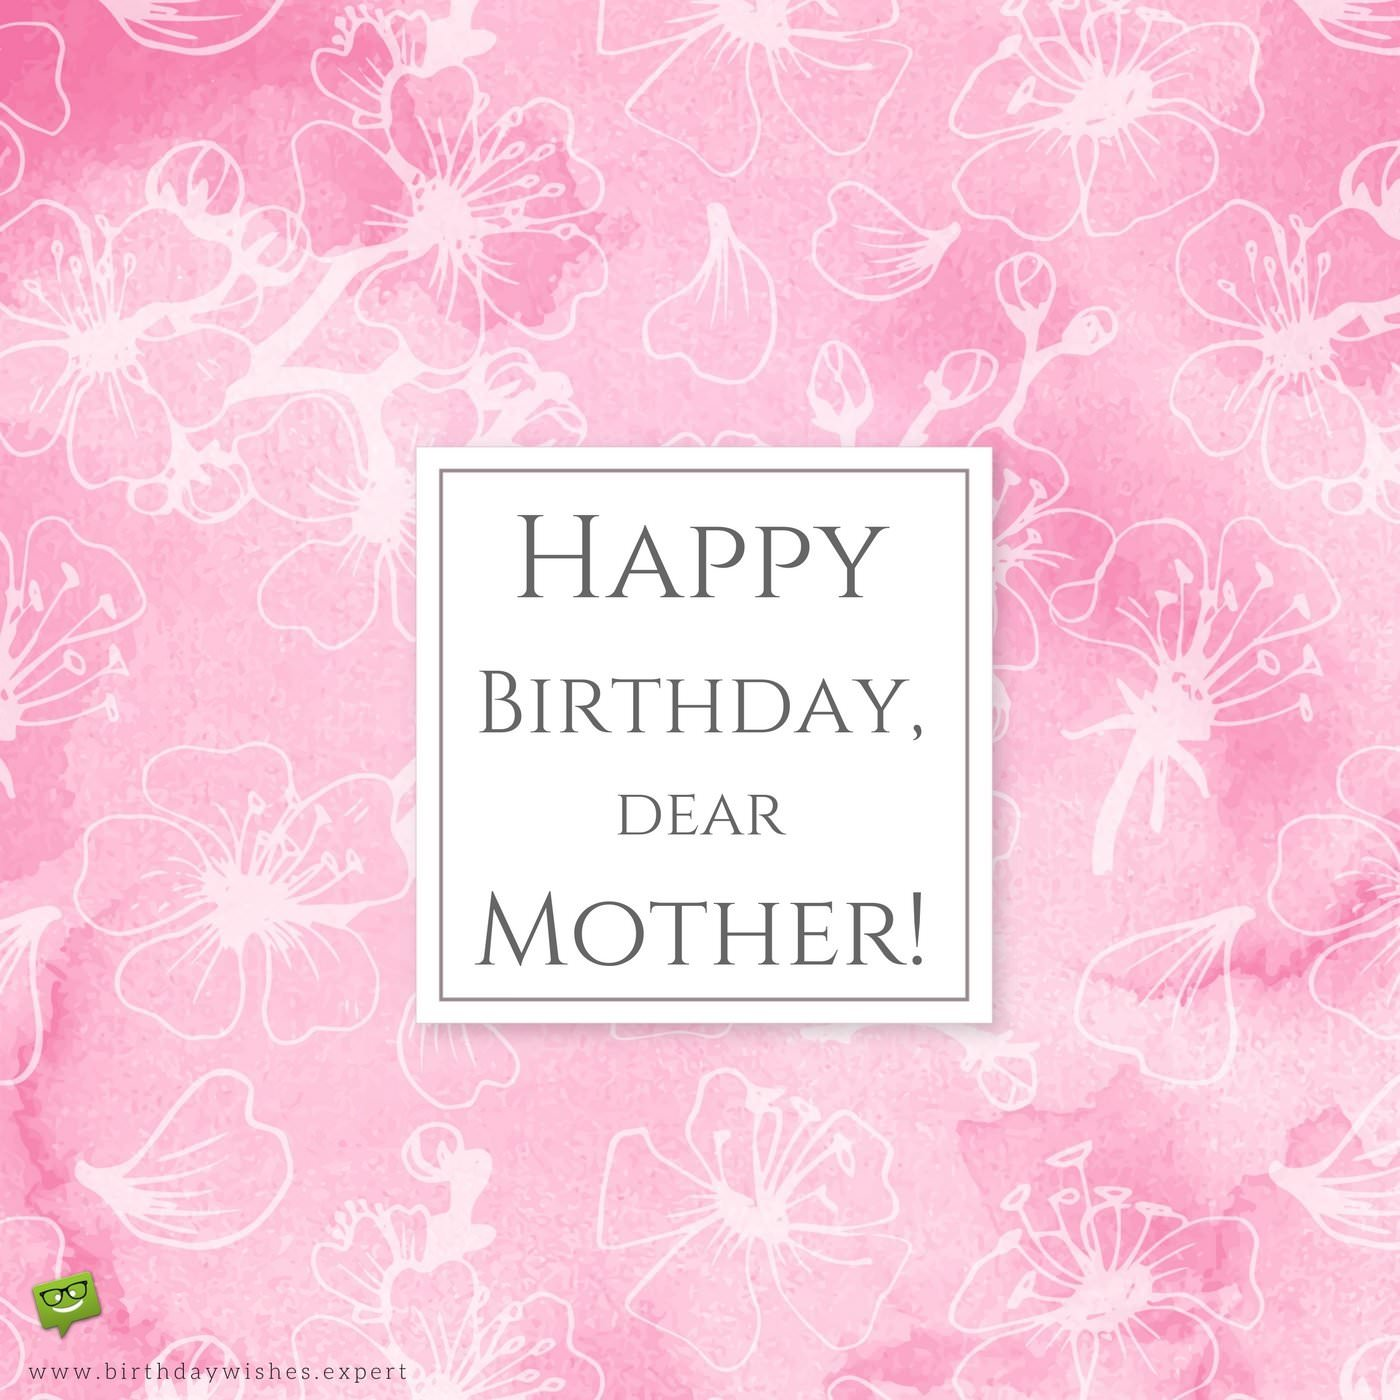 best mom in the world birthday wishes for your mother happy birthday dear mother